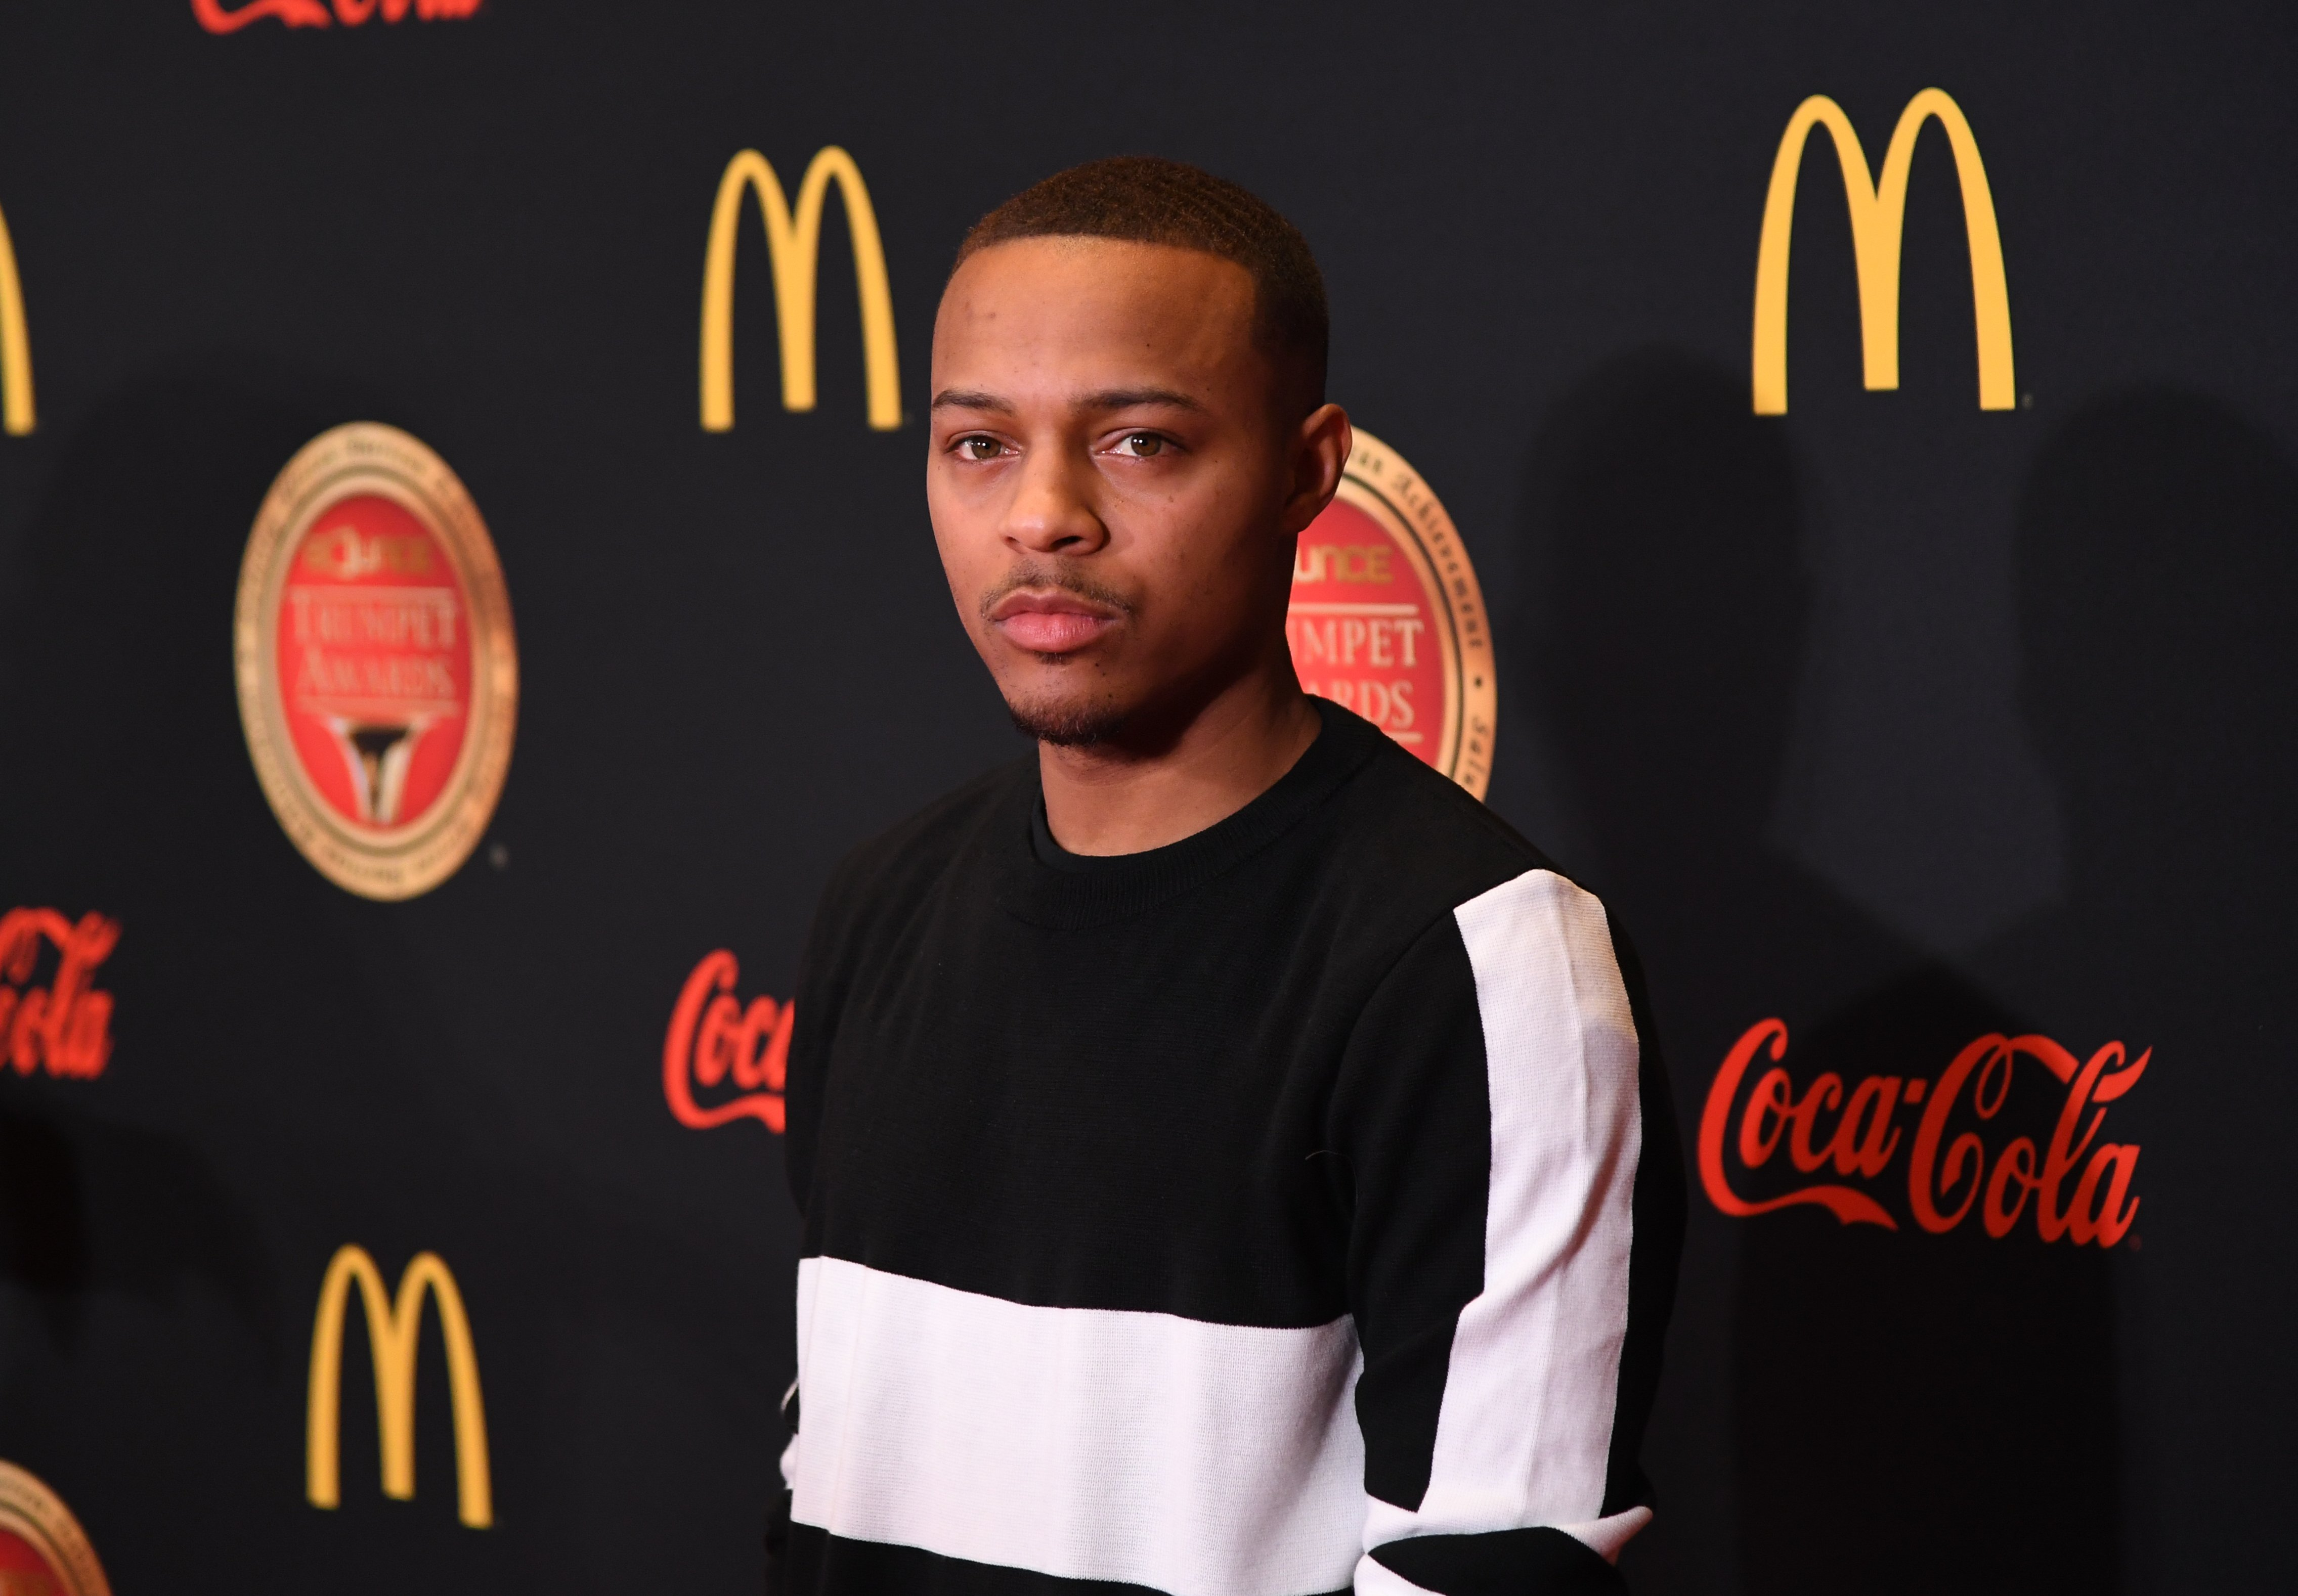 Bow Wow at the 26th Annual Trumpet Awards at Cobb Energy Performing Arts Center on January 20, 2018 in Atlanta, Georgia. | Source: Getty Images